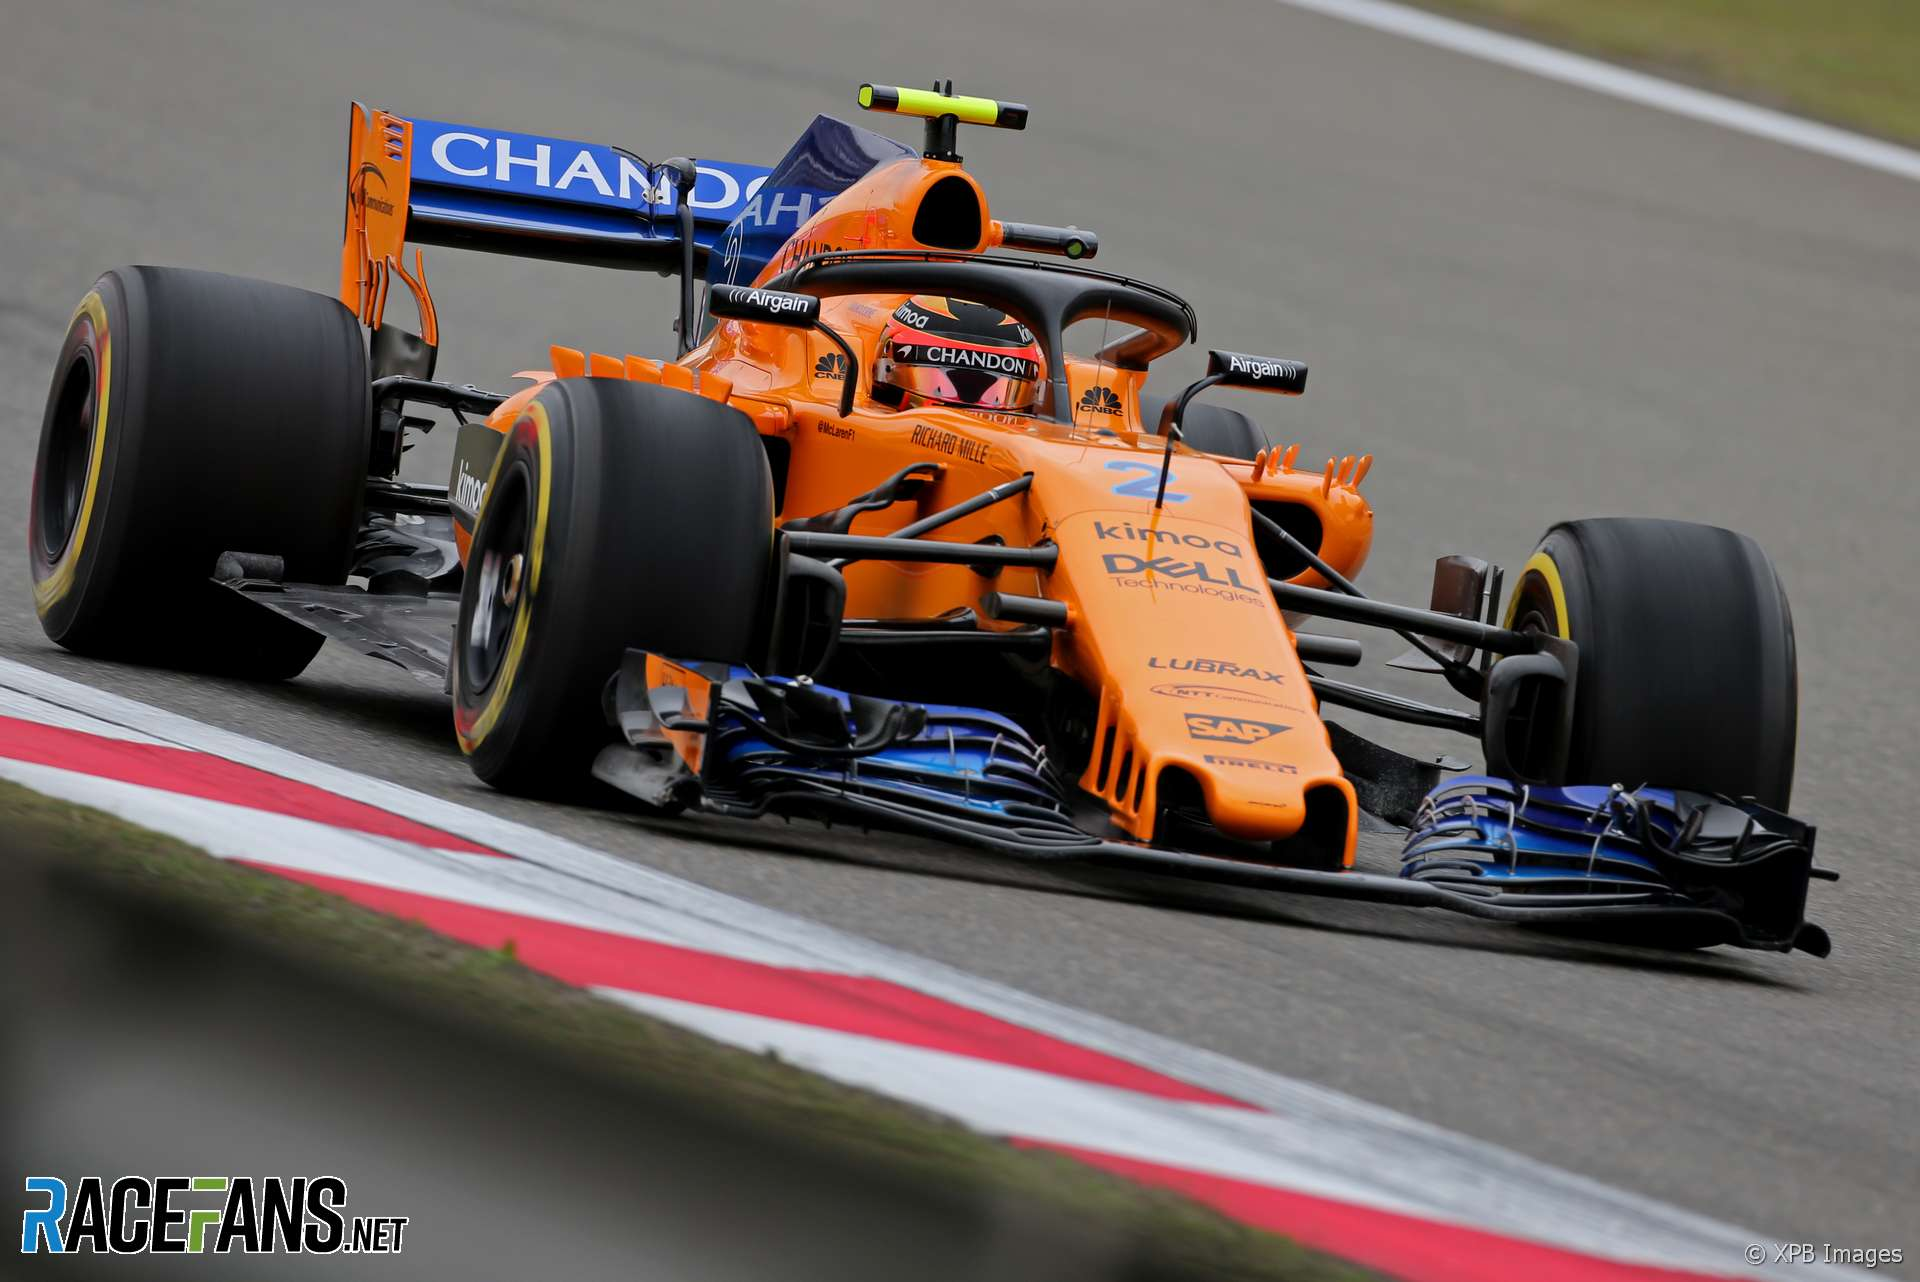 mclaren fined in f1 39 s fifth unsafe release incident of 2018 racefans. Black Bedroom Furniture Sets. Home Design Ideas